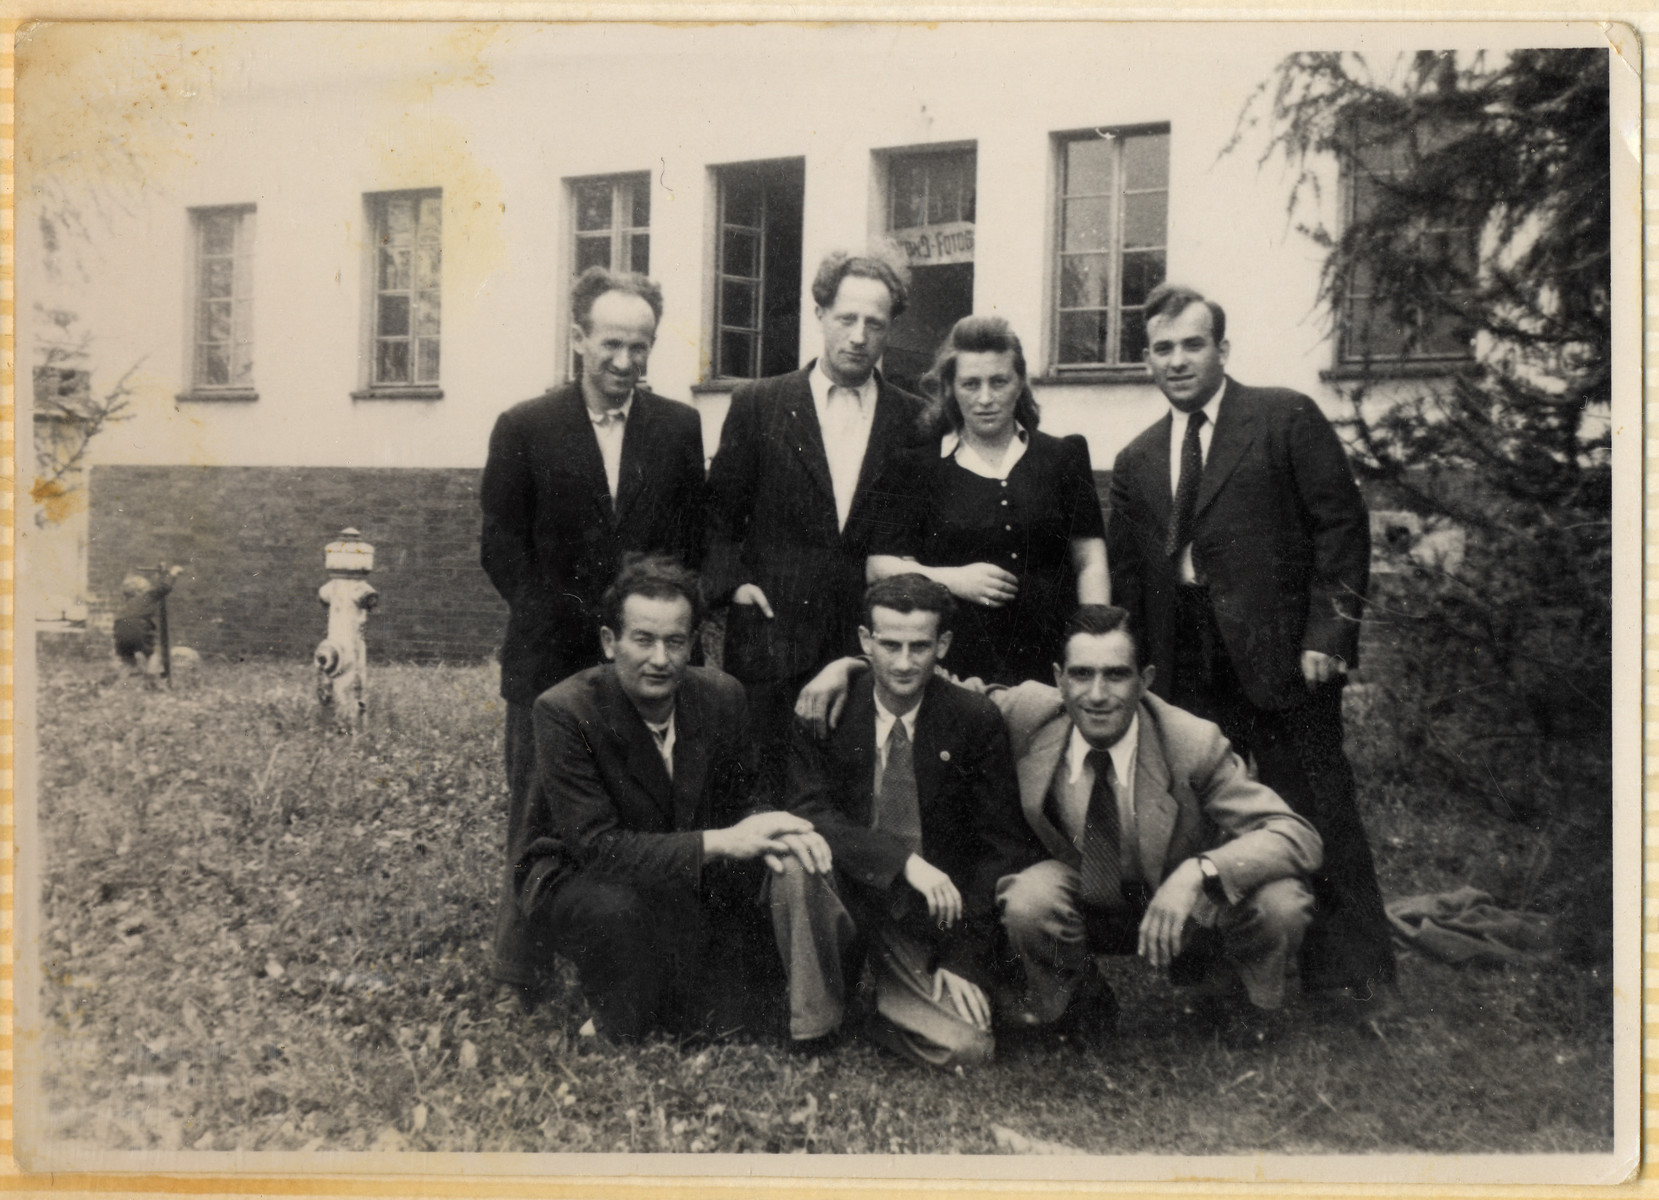 A group of Jewish DPs pose together in the Hofgeismar displaced persons camp.  Emil Kohl is pictured at the bottom left.